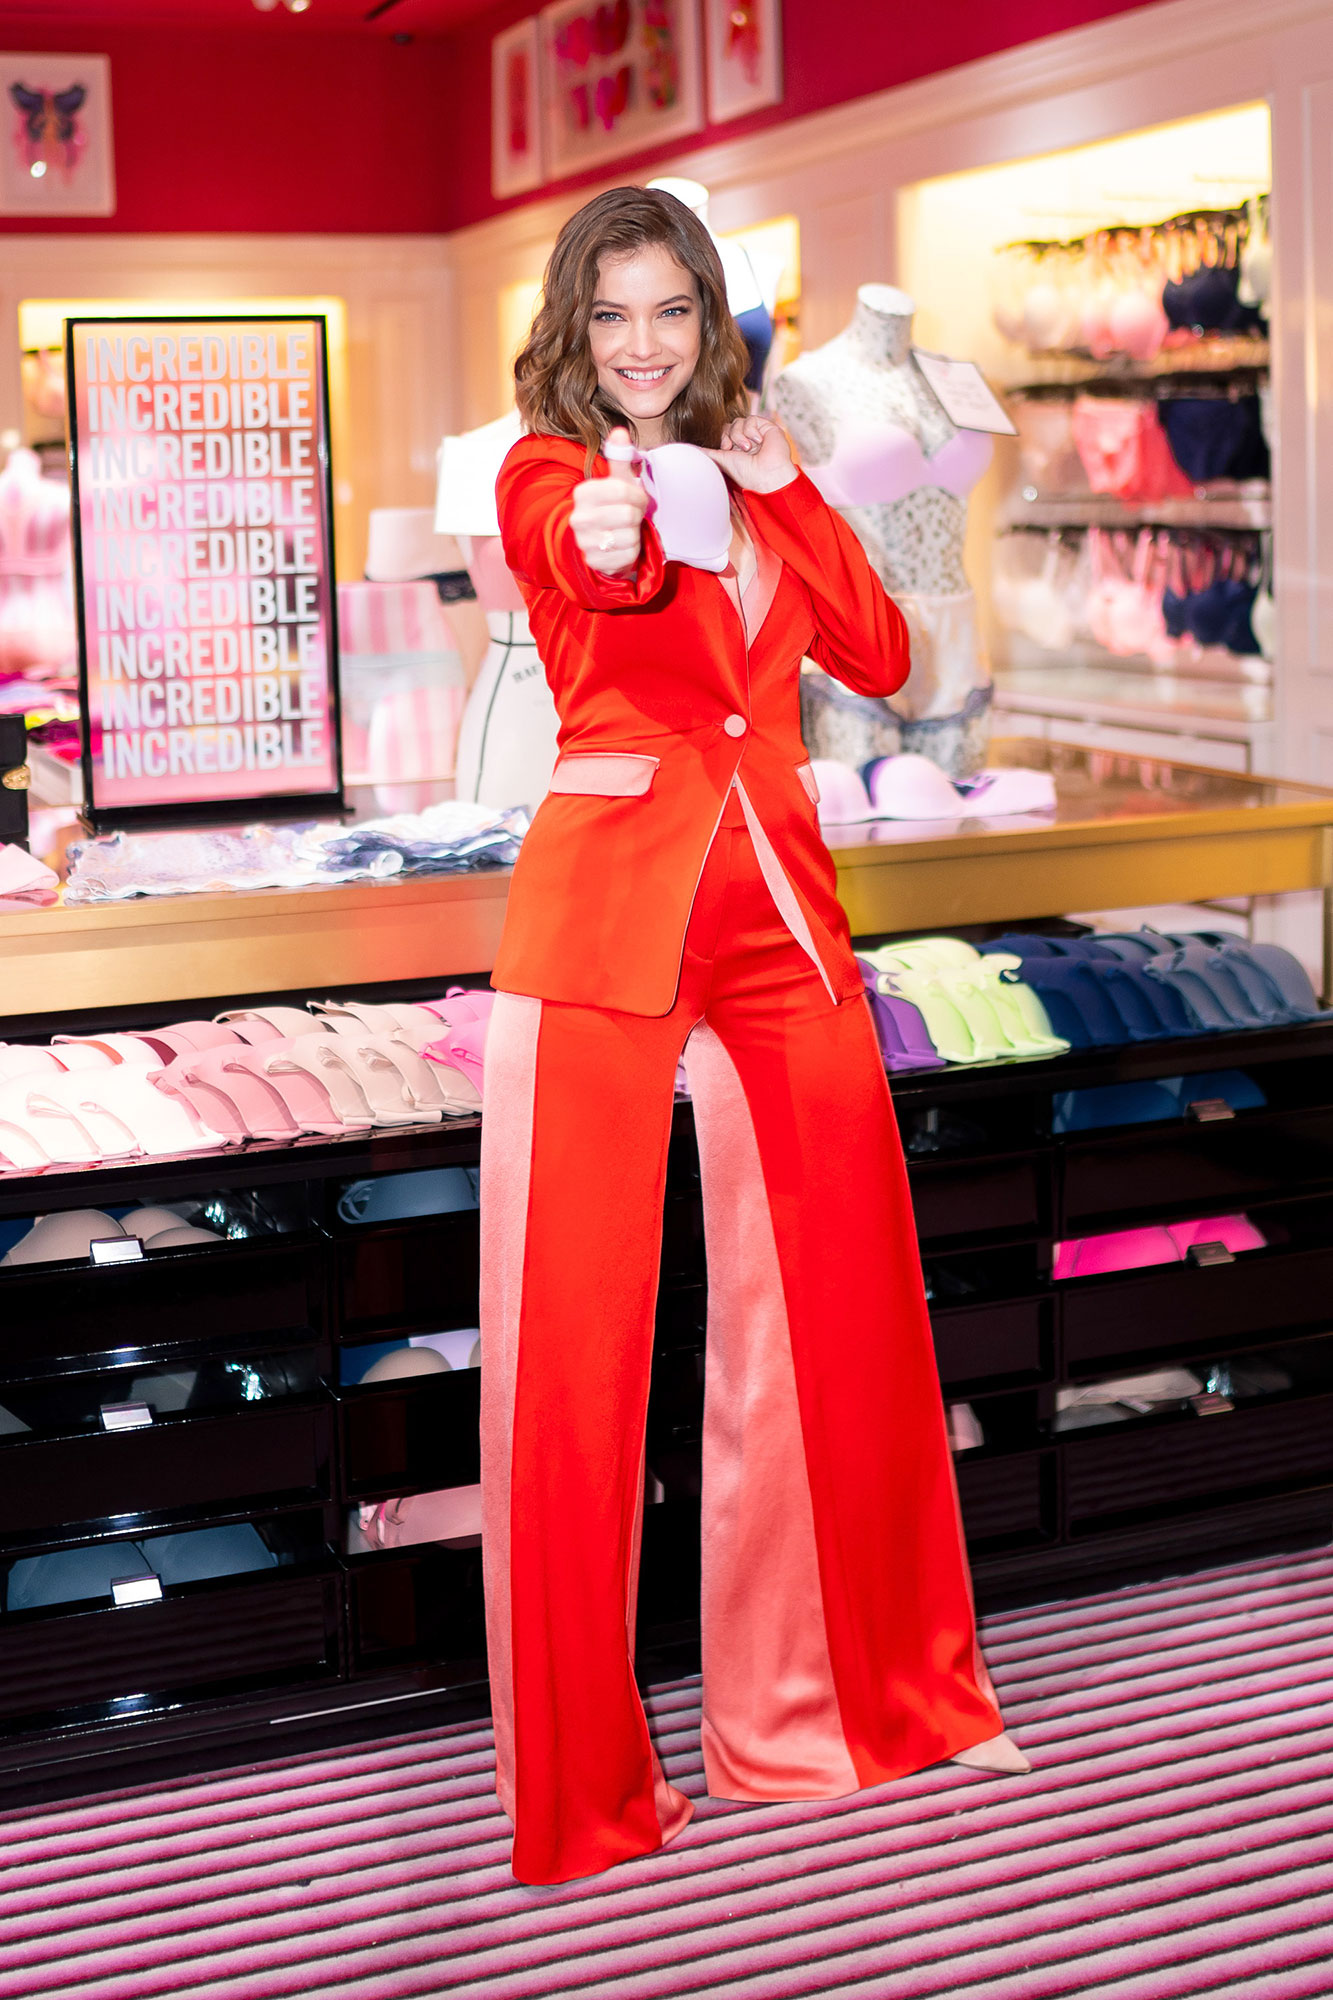 Barbara Palvin Victorias Secret Angel - Angel Barbara Palvin launches New Incredible By Victoria's Secret Collection at Victoria's Secret 5th Avenue Store on April 16, 2019 in New York City.